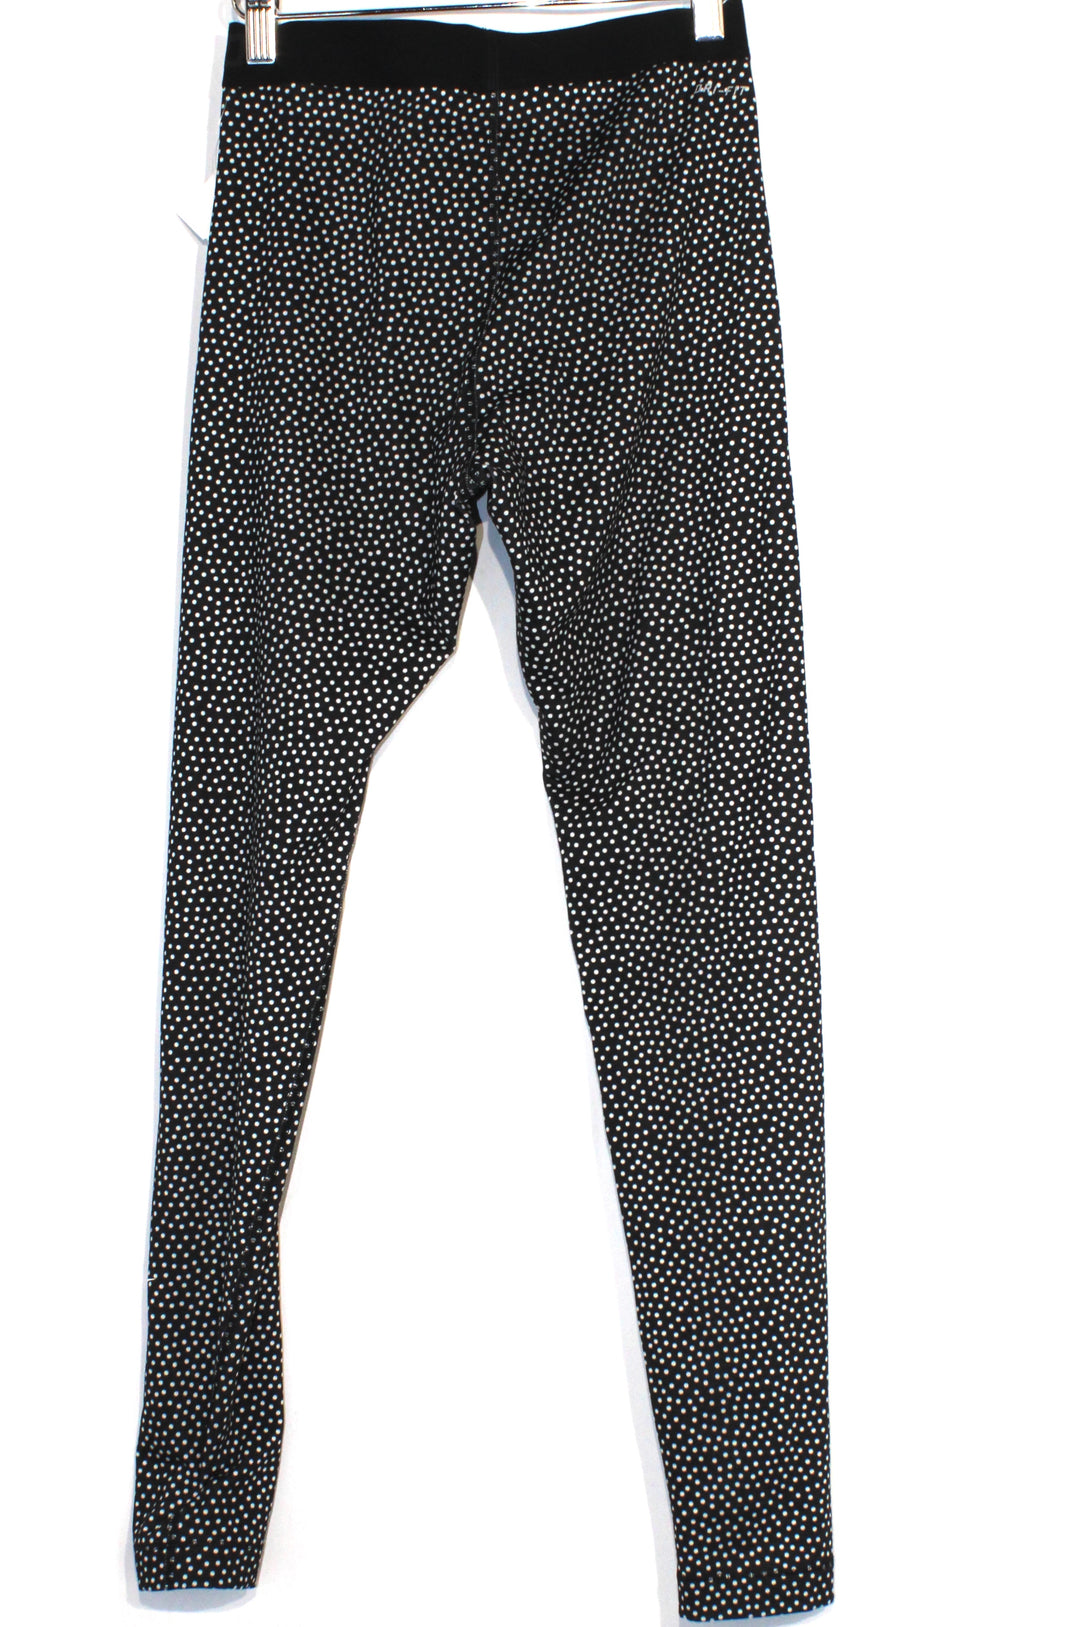 Photo #1 - BRAND: NIKE APPAREL <BR>STYLE: ATHLETIC PANTS<BR>COLOR: DOTS <BR>SIZE: S <BR>SKU: 262-26275-64357